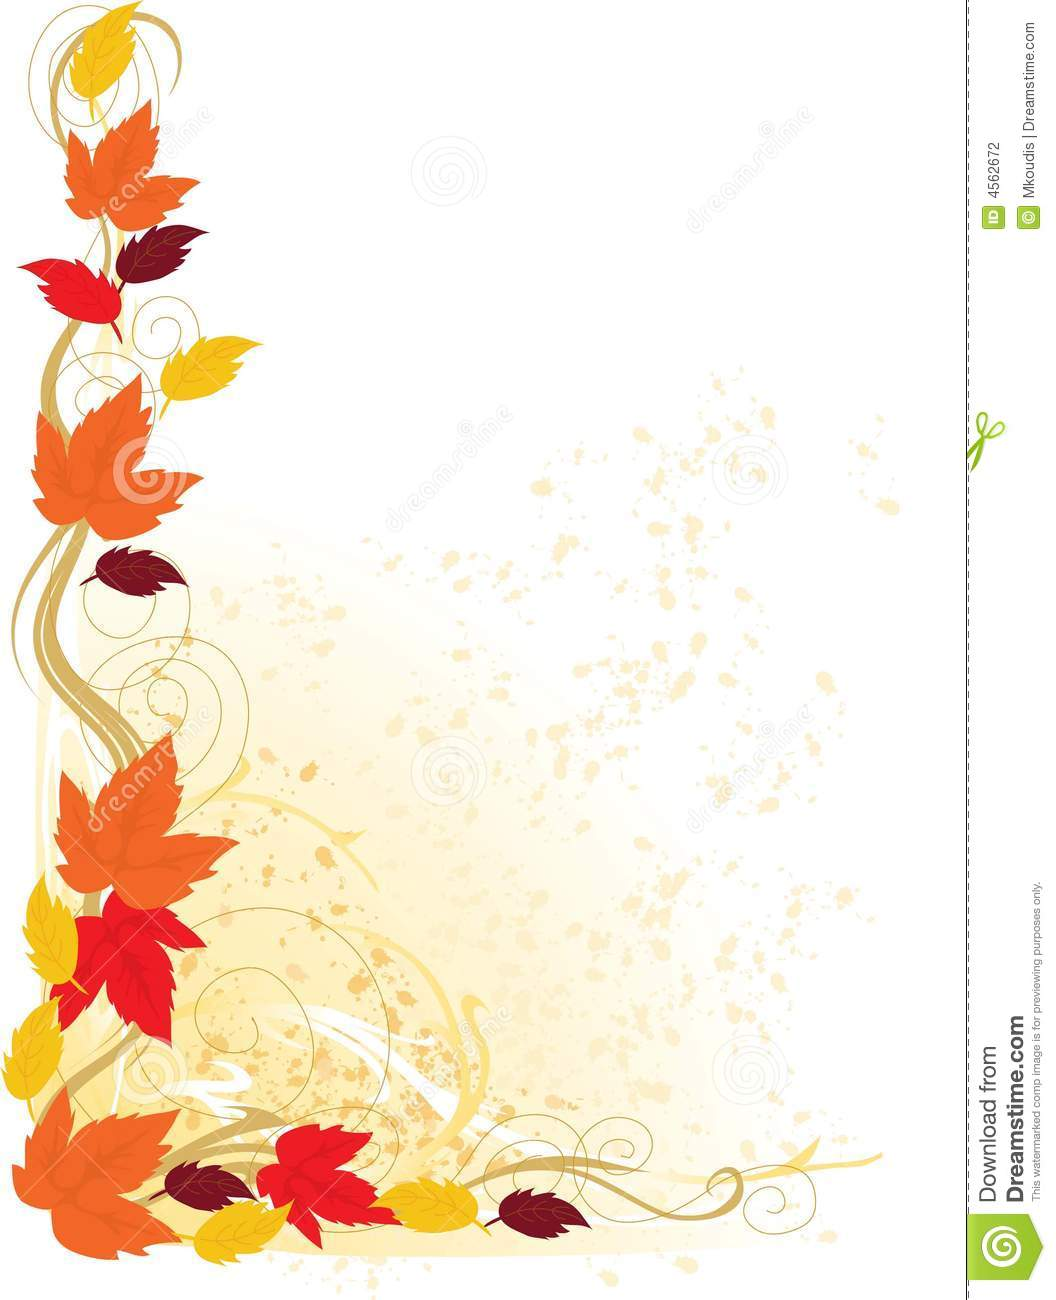 herbst rand stockfotografie bild 4562672 clipart borders king and queen clipart borders king and queen